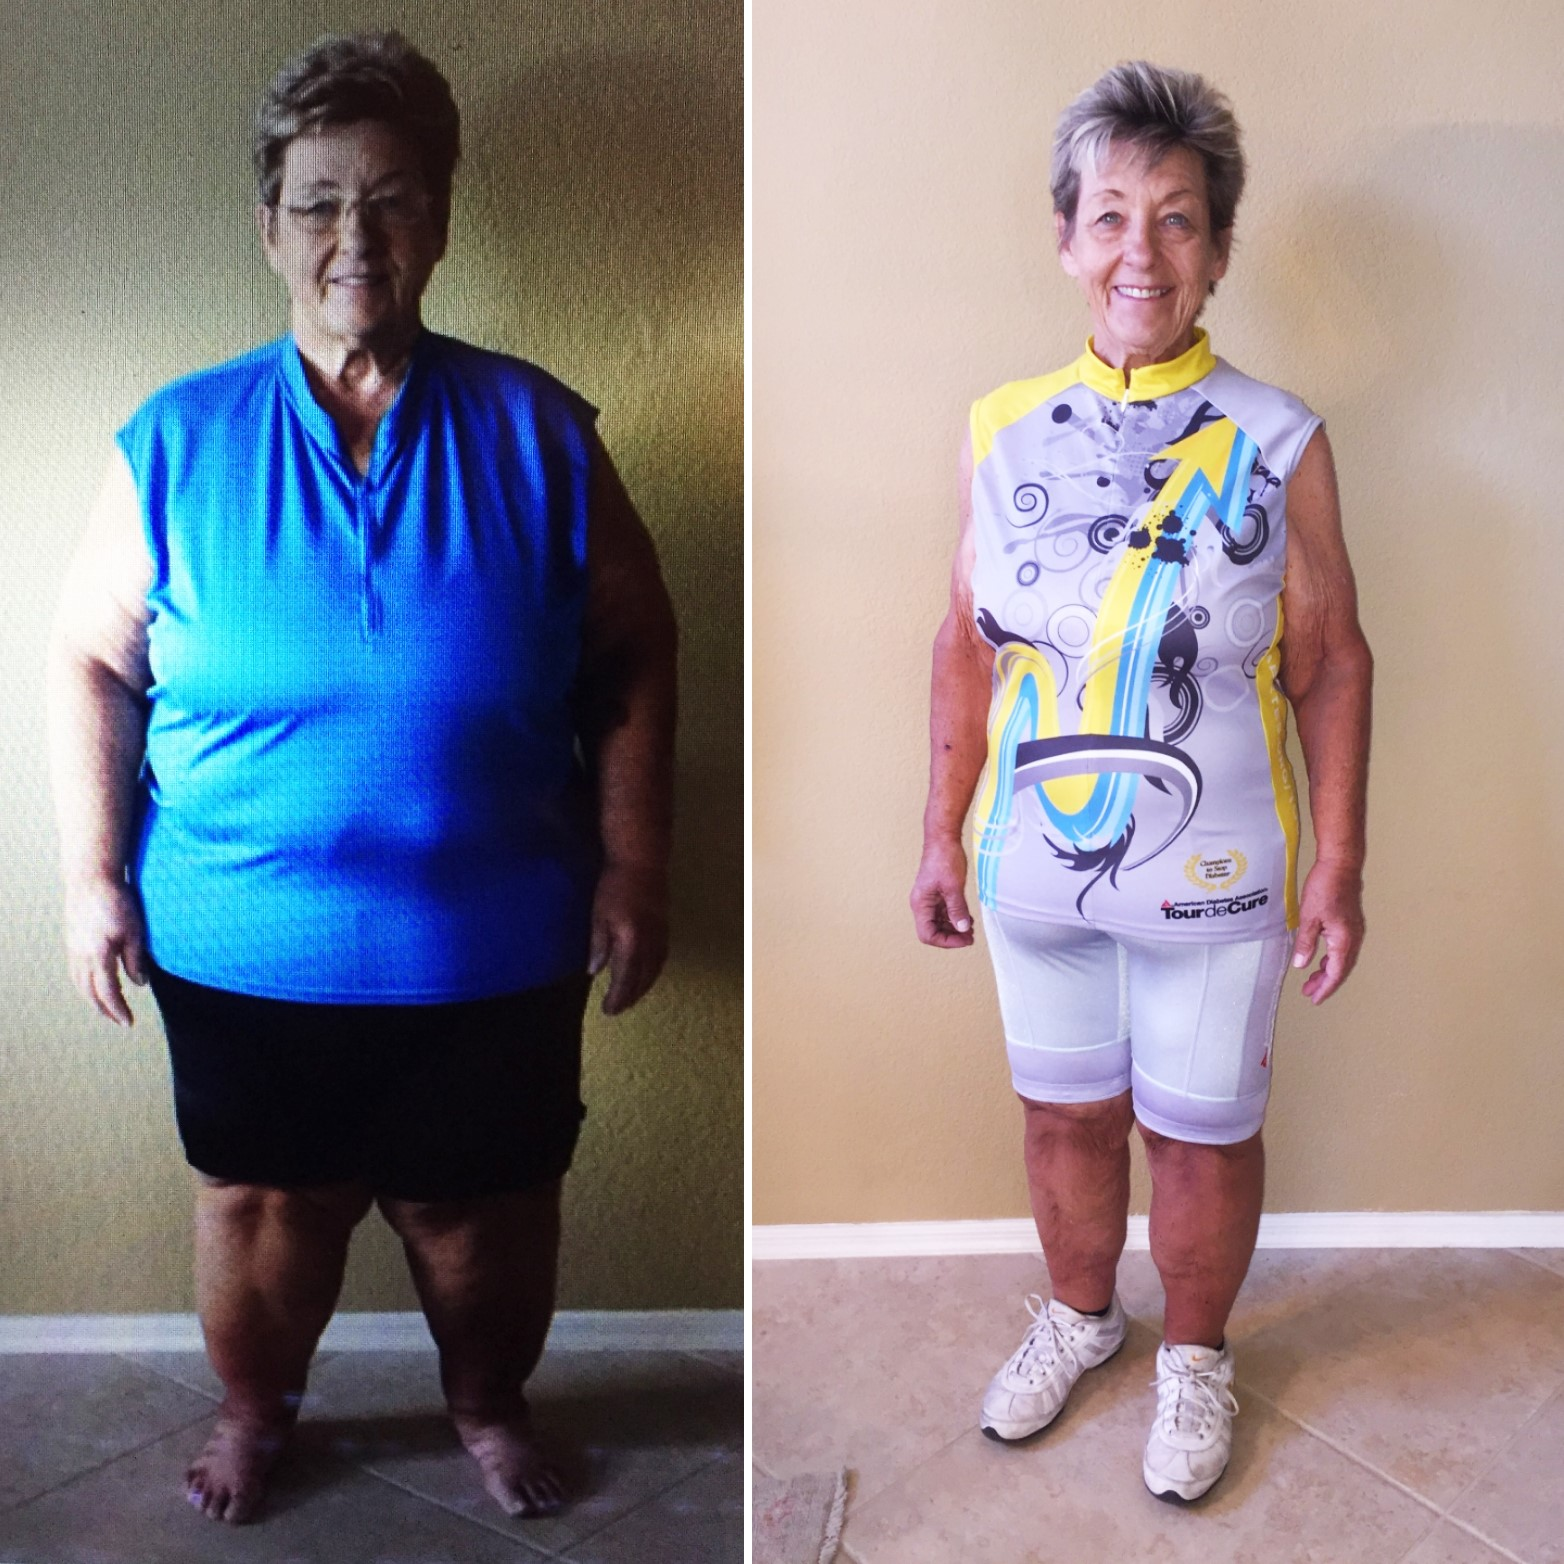 Jean opens up about her journey and how bicycling (literally) shaped her into the woman she is today. -